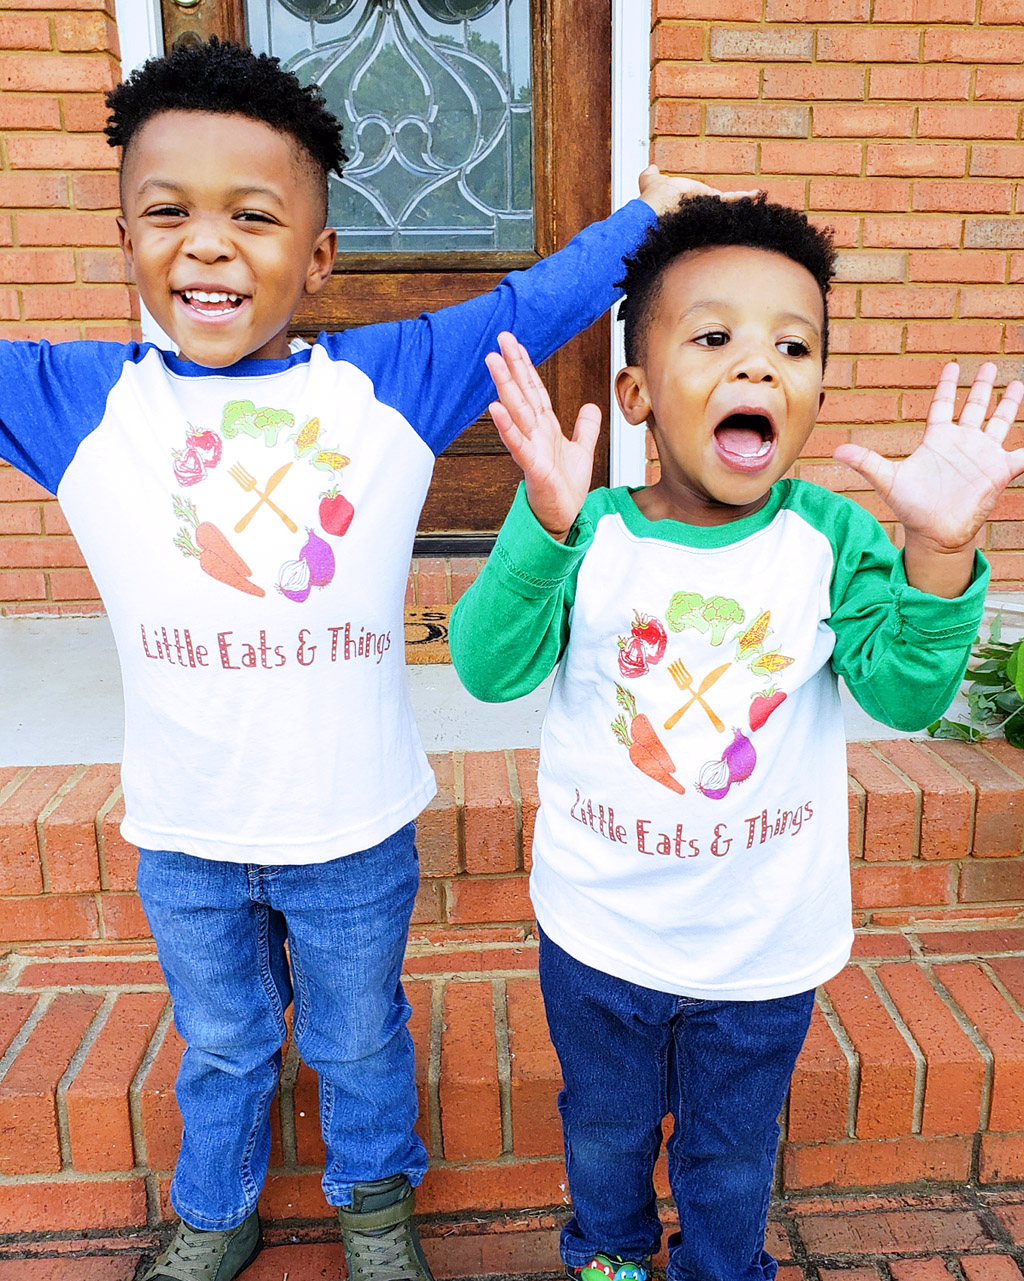 African American kids of Registered Dietitian Nutritionist and Owner of Little Eats & Things